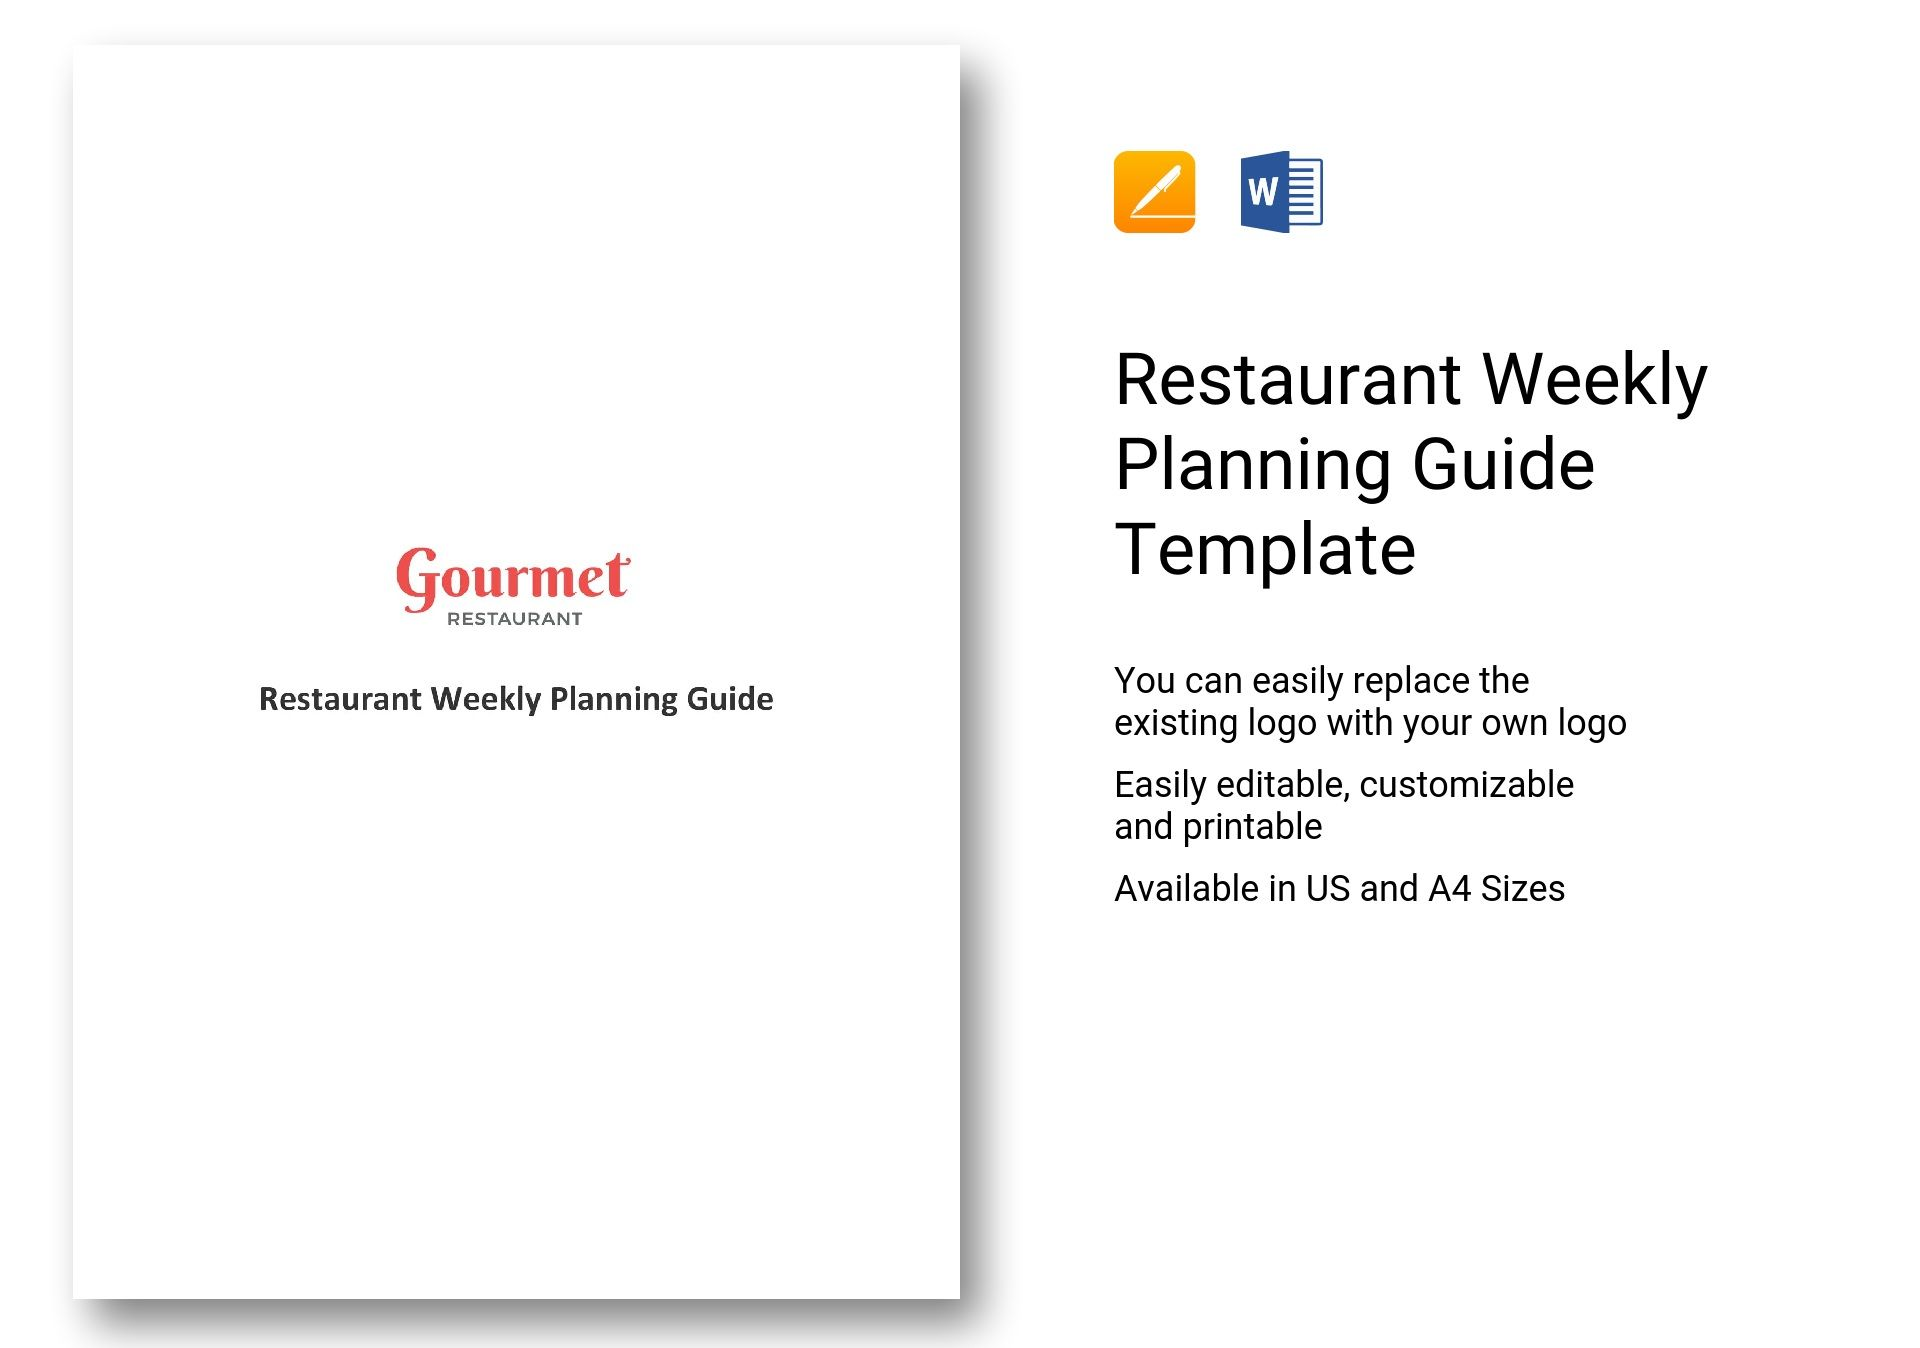 Restaurant Weekly Planning Guide Template In Word Apple Pages